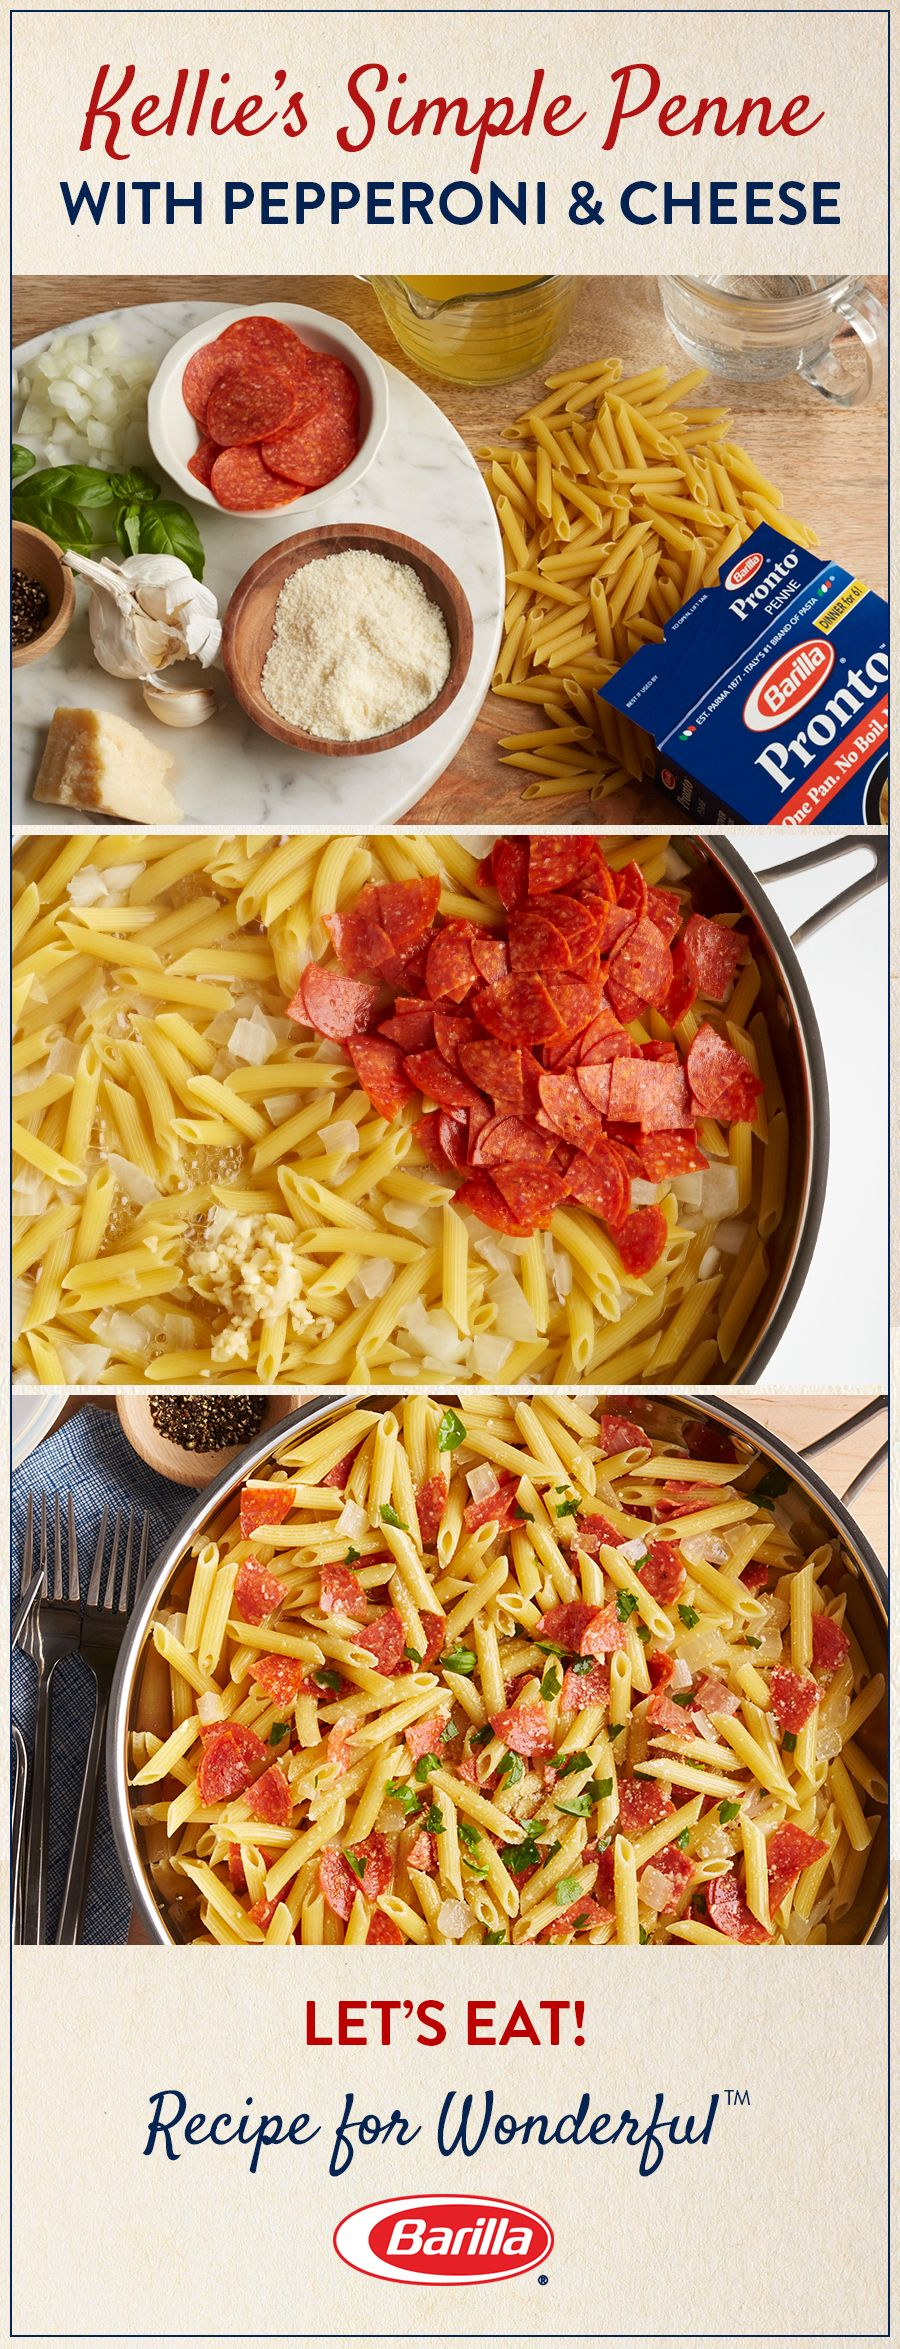 Takeout isn't your only option for a speedy dinner. All of your family's favorite pizza flavors – pepperoni, basil, and cheese – combined with deliciously al dente Barilla penne pasta – and no need to wait for delivery. Try this easy recipe for Kellie's S